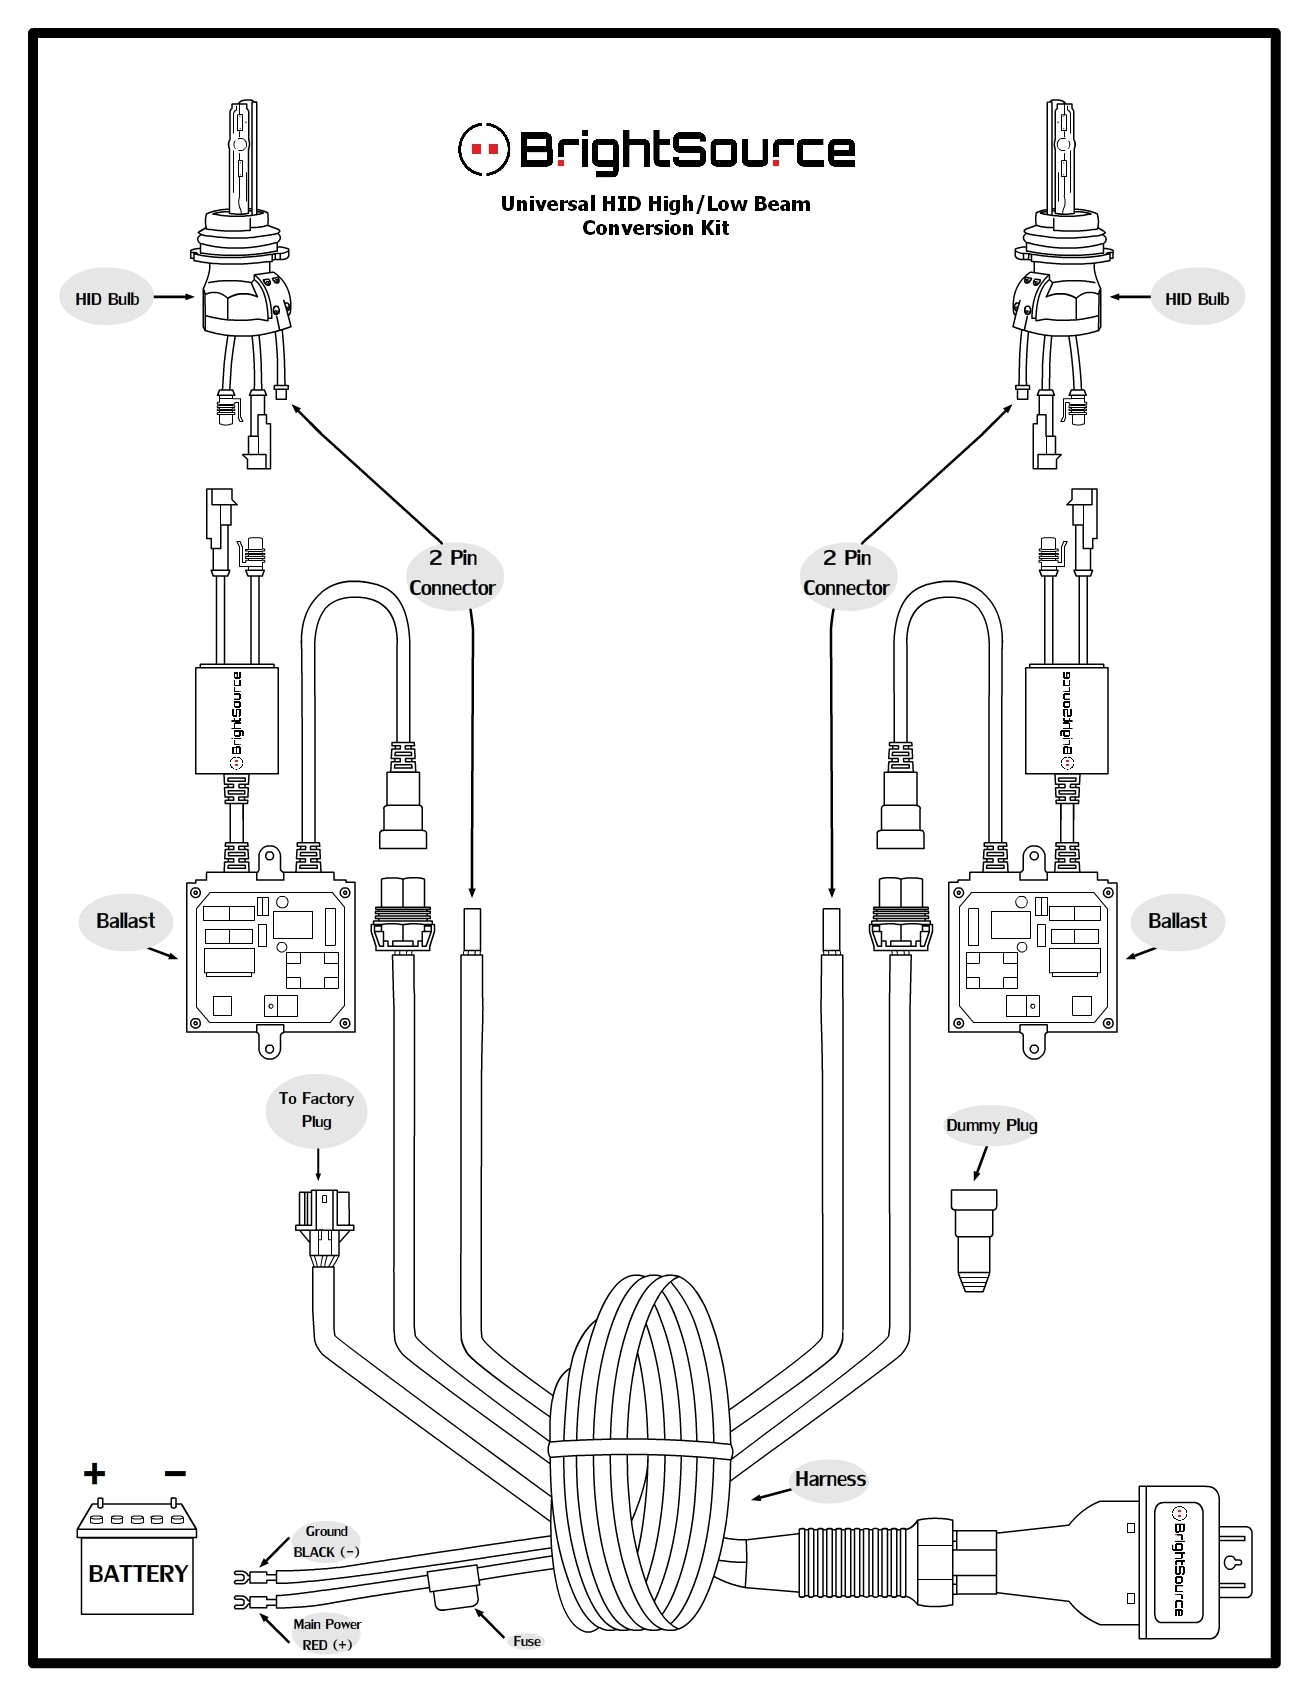 9012 hid wiring diagrams